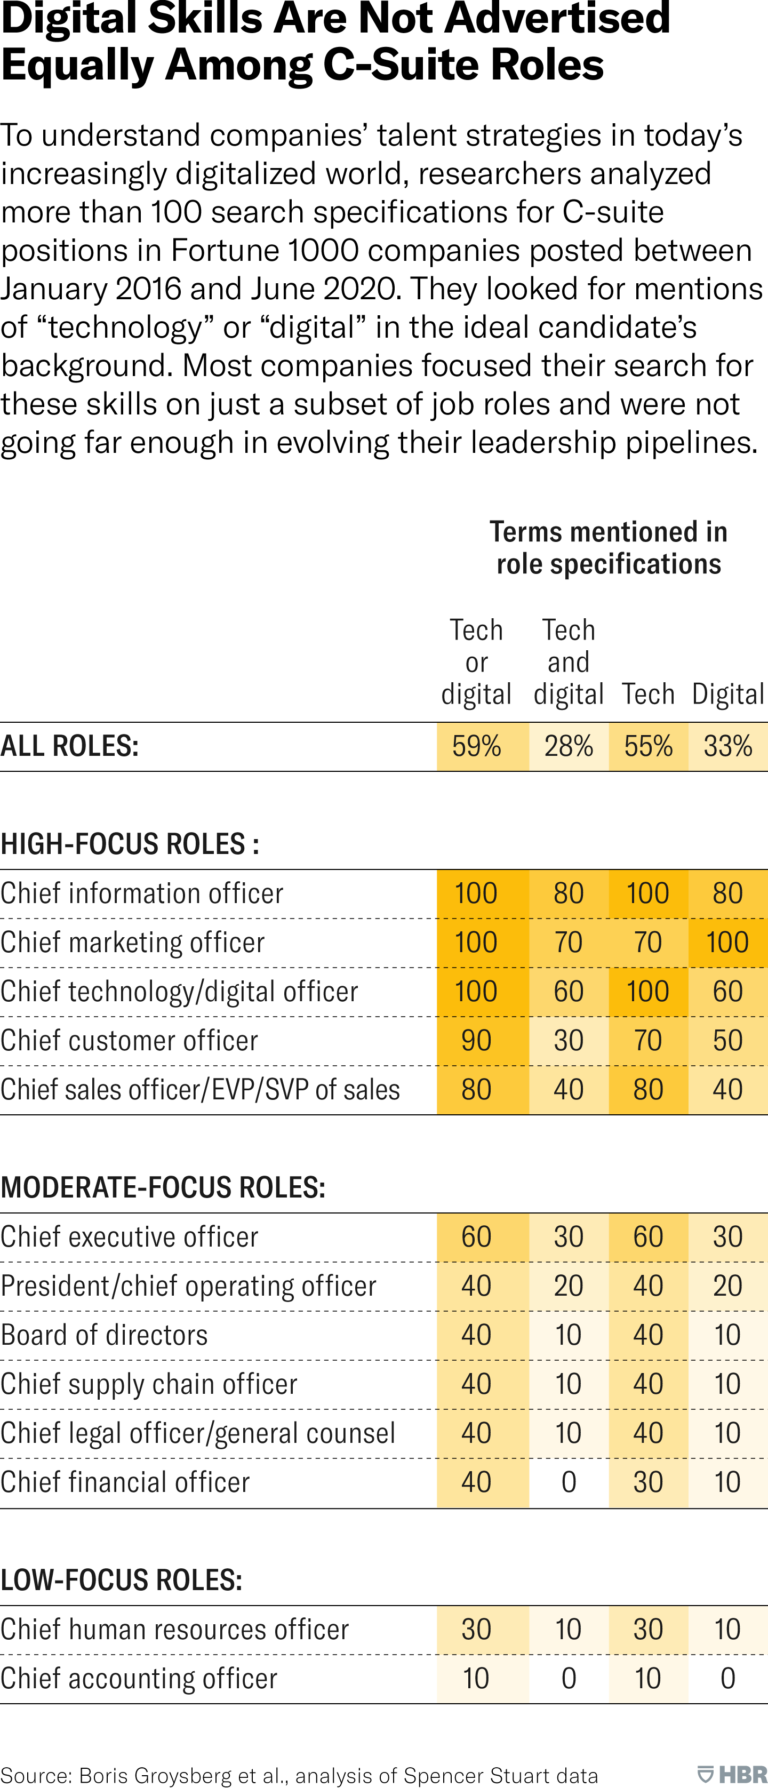 Is Your C-Suite Equipped to Lead a Digital Transformation?